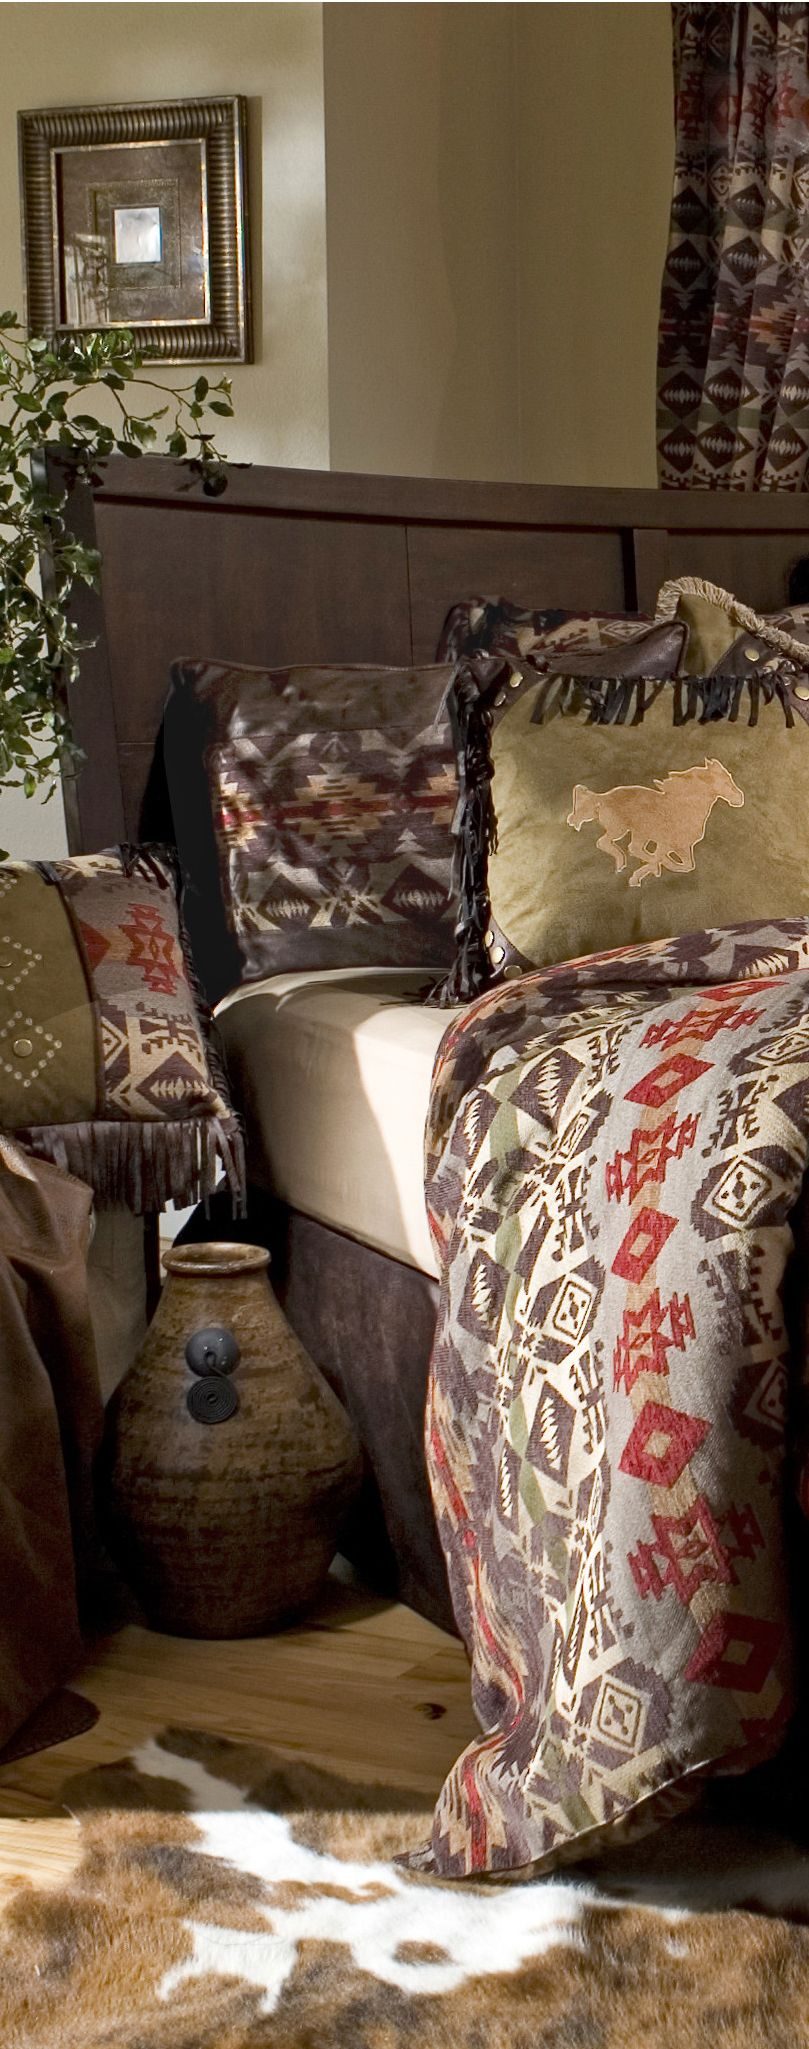 Carstens Montana Bedding Collection | Cabin Bedding and ...